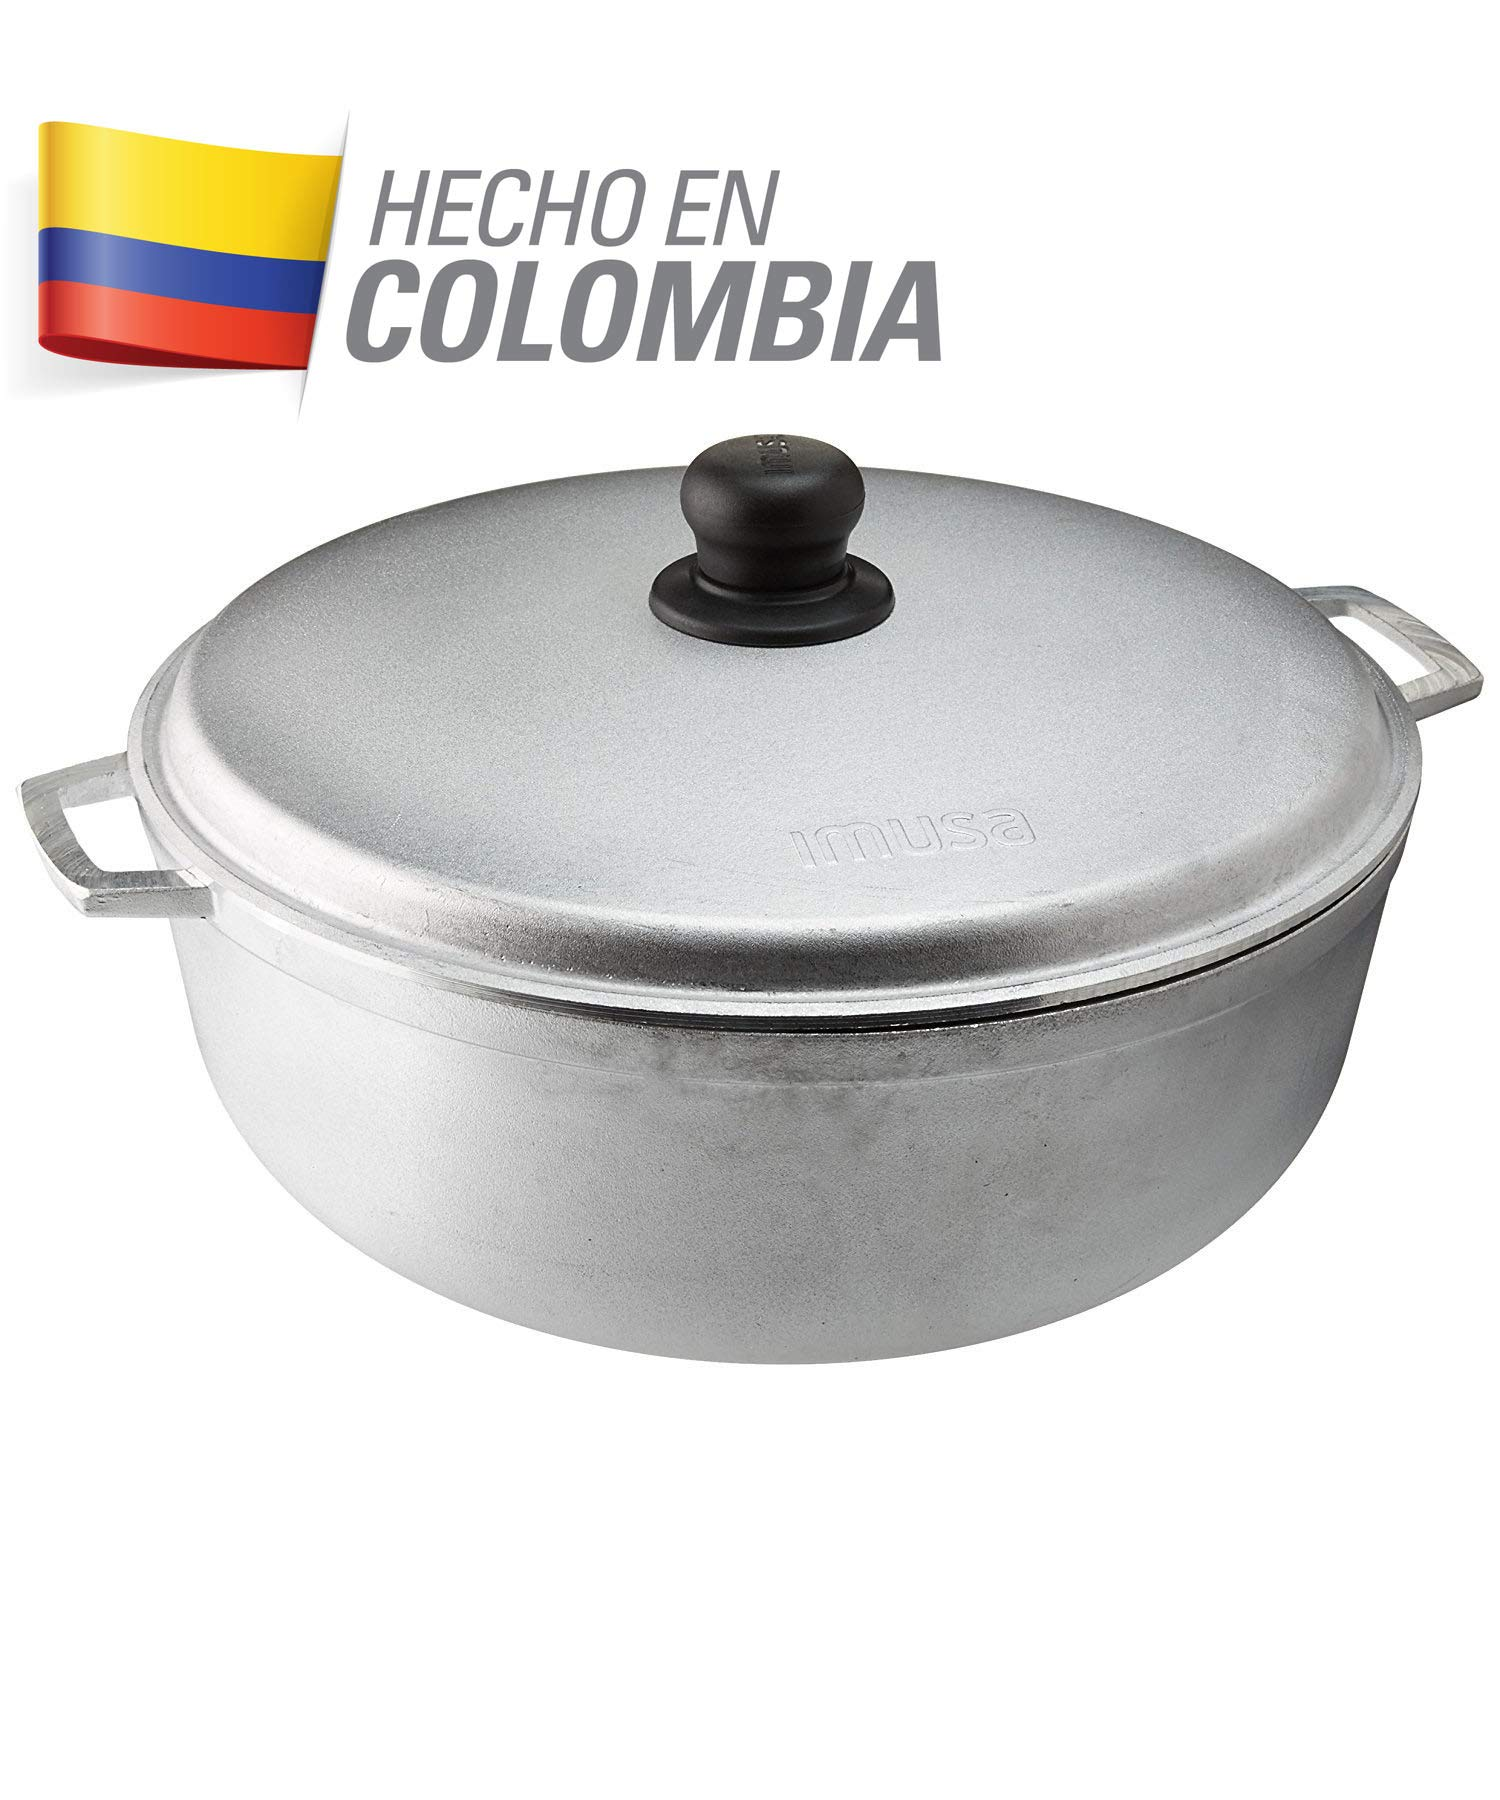 IMUSA USA GAU-80505W 4.8Qt Traditional Colombian Caldero for Cooking and Serving, Silver by Imusa